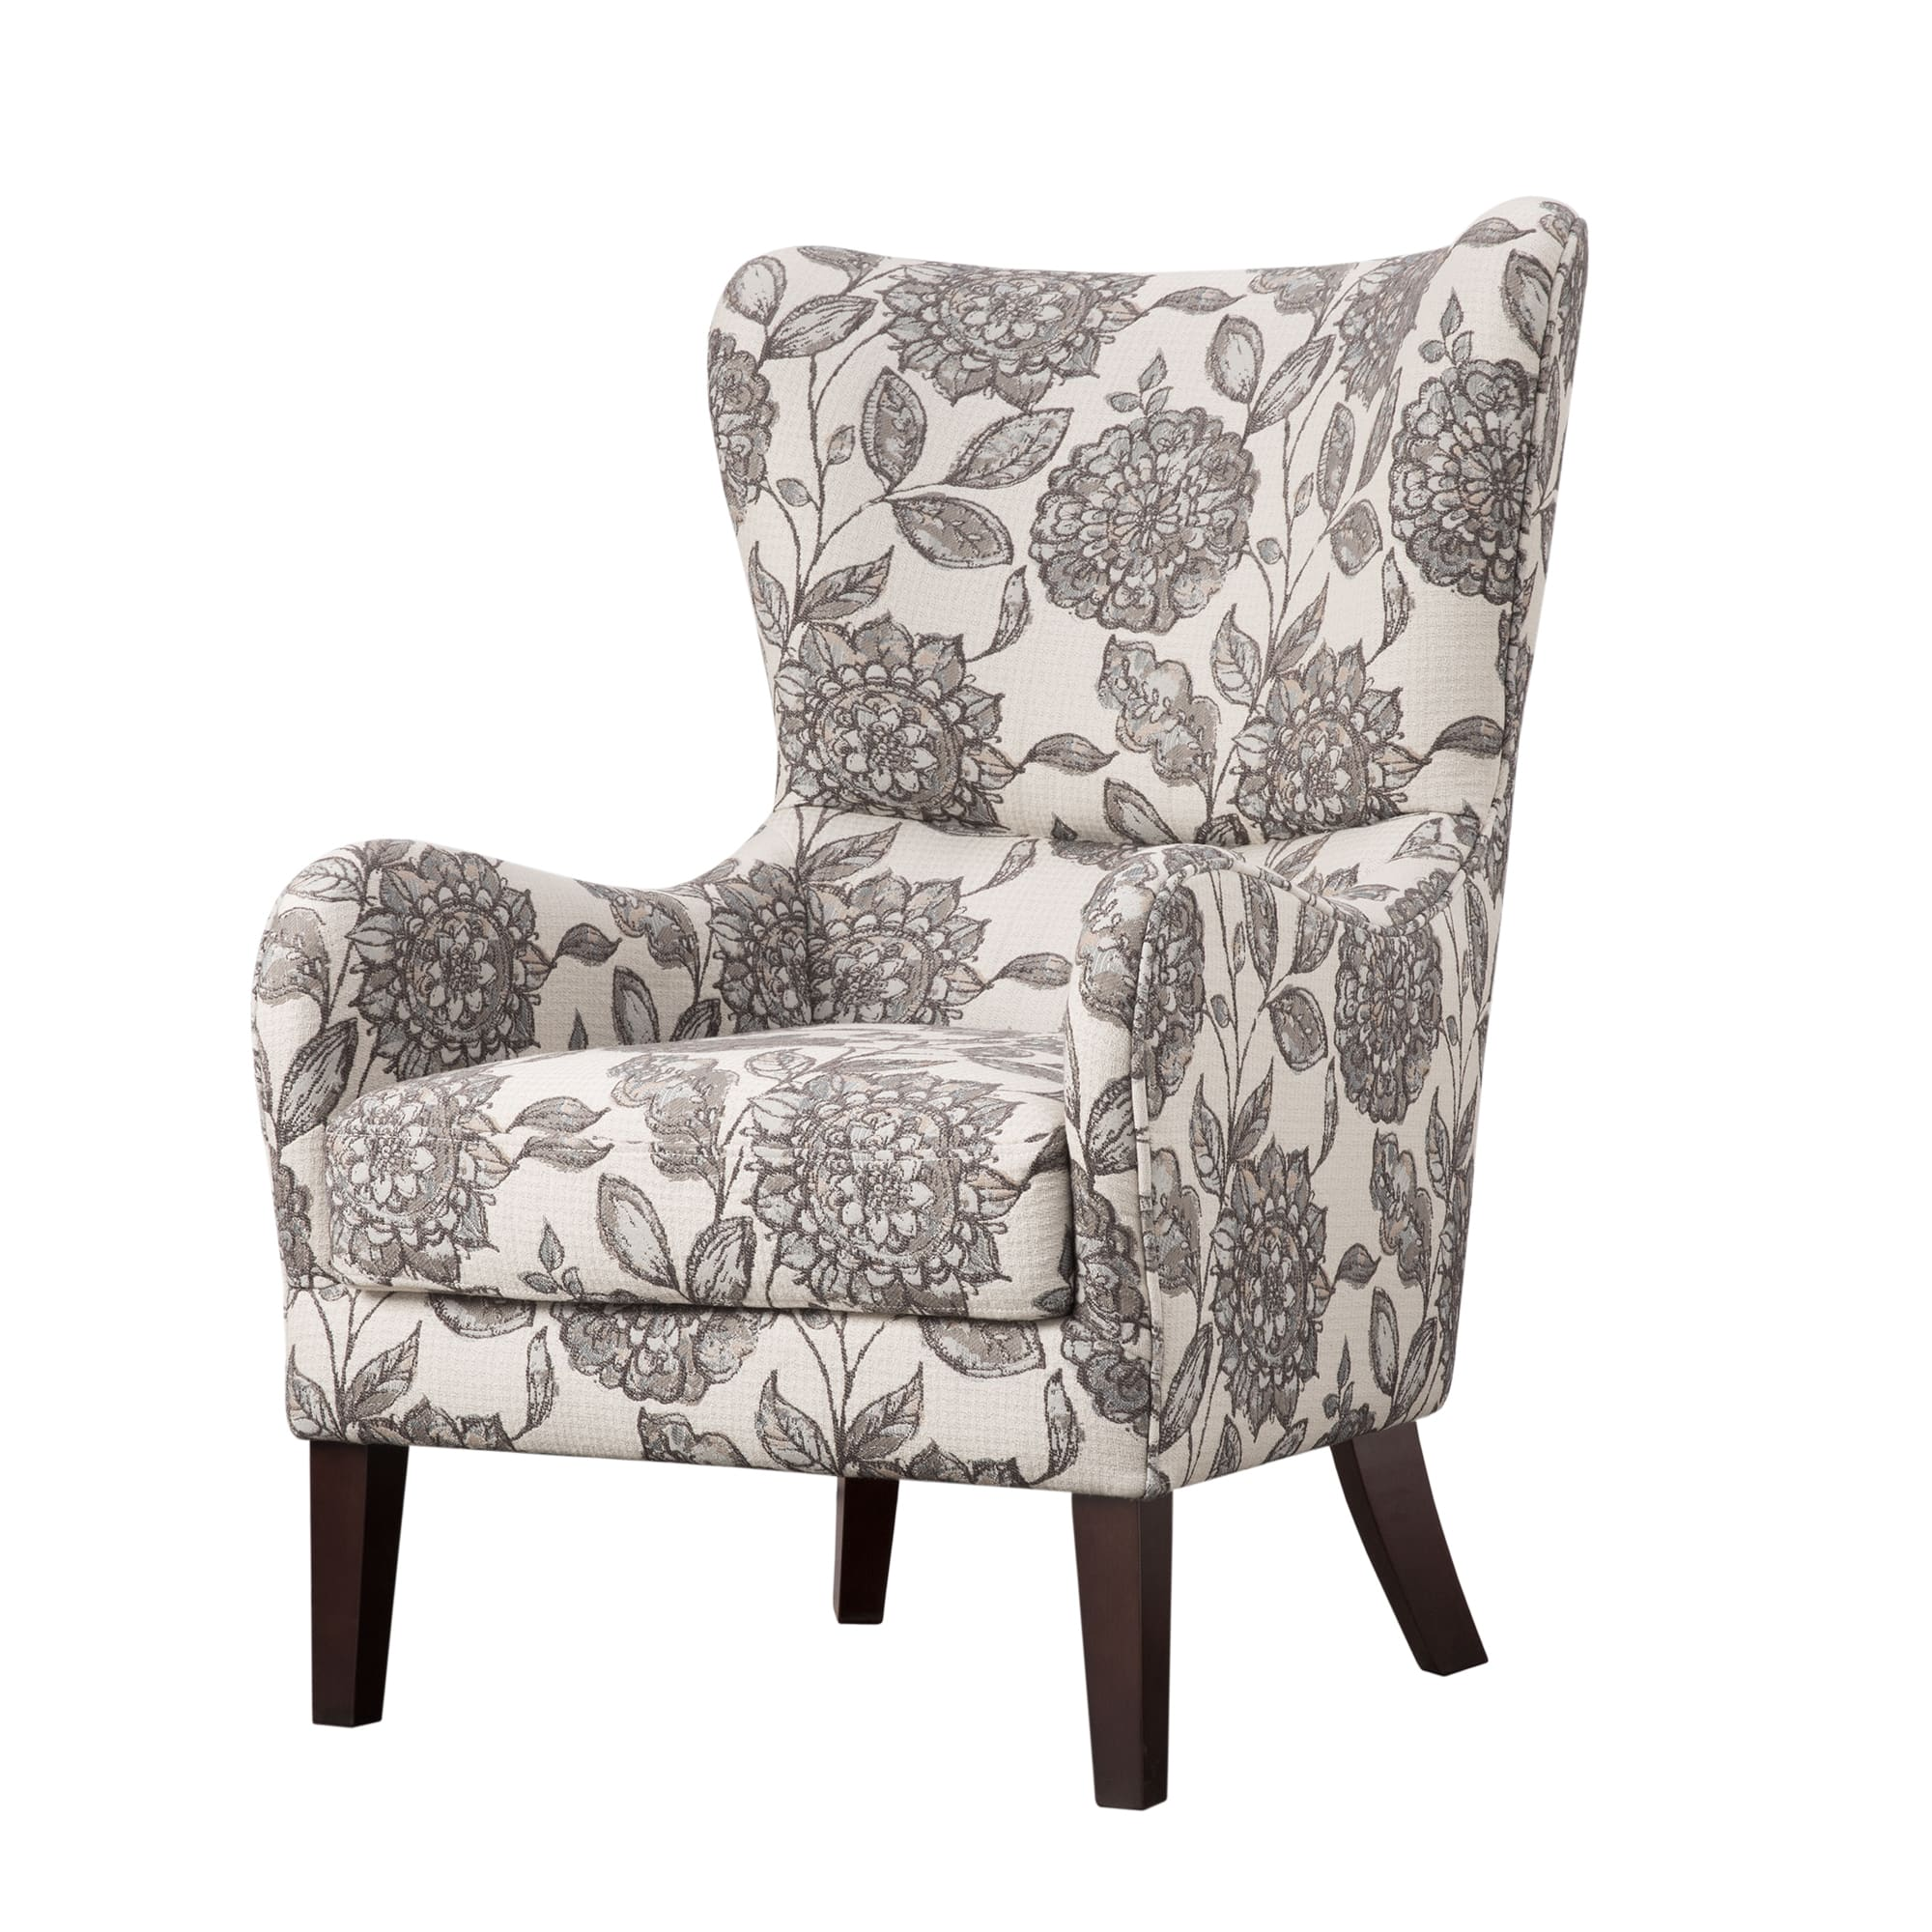 Buy living room chairs online at our best for Buy living room chairs